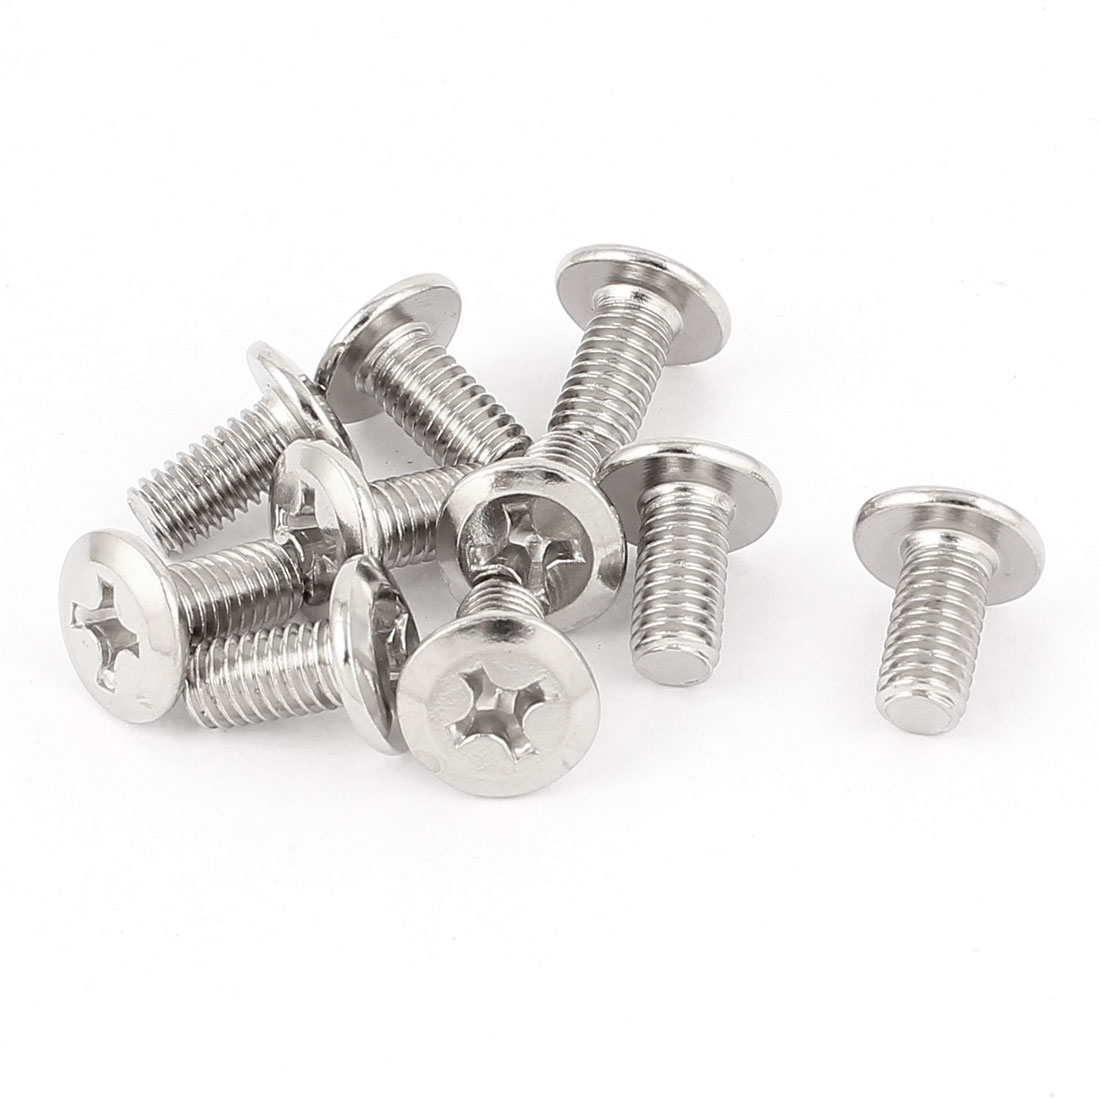 M6 x 12mm Phillips Flat Head Countersunk Bolts Machine Screws Silver Tone 10 Pcs